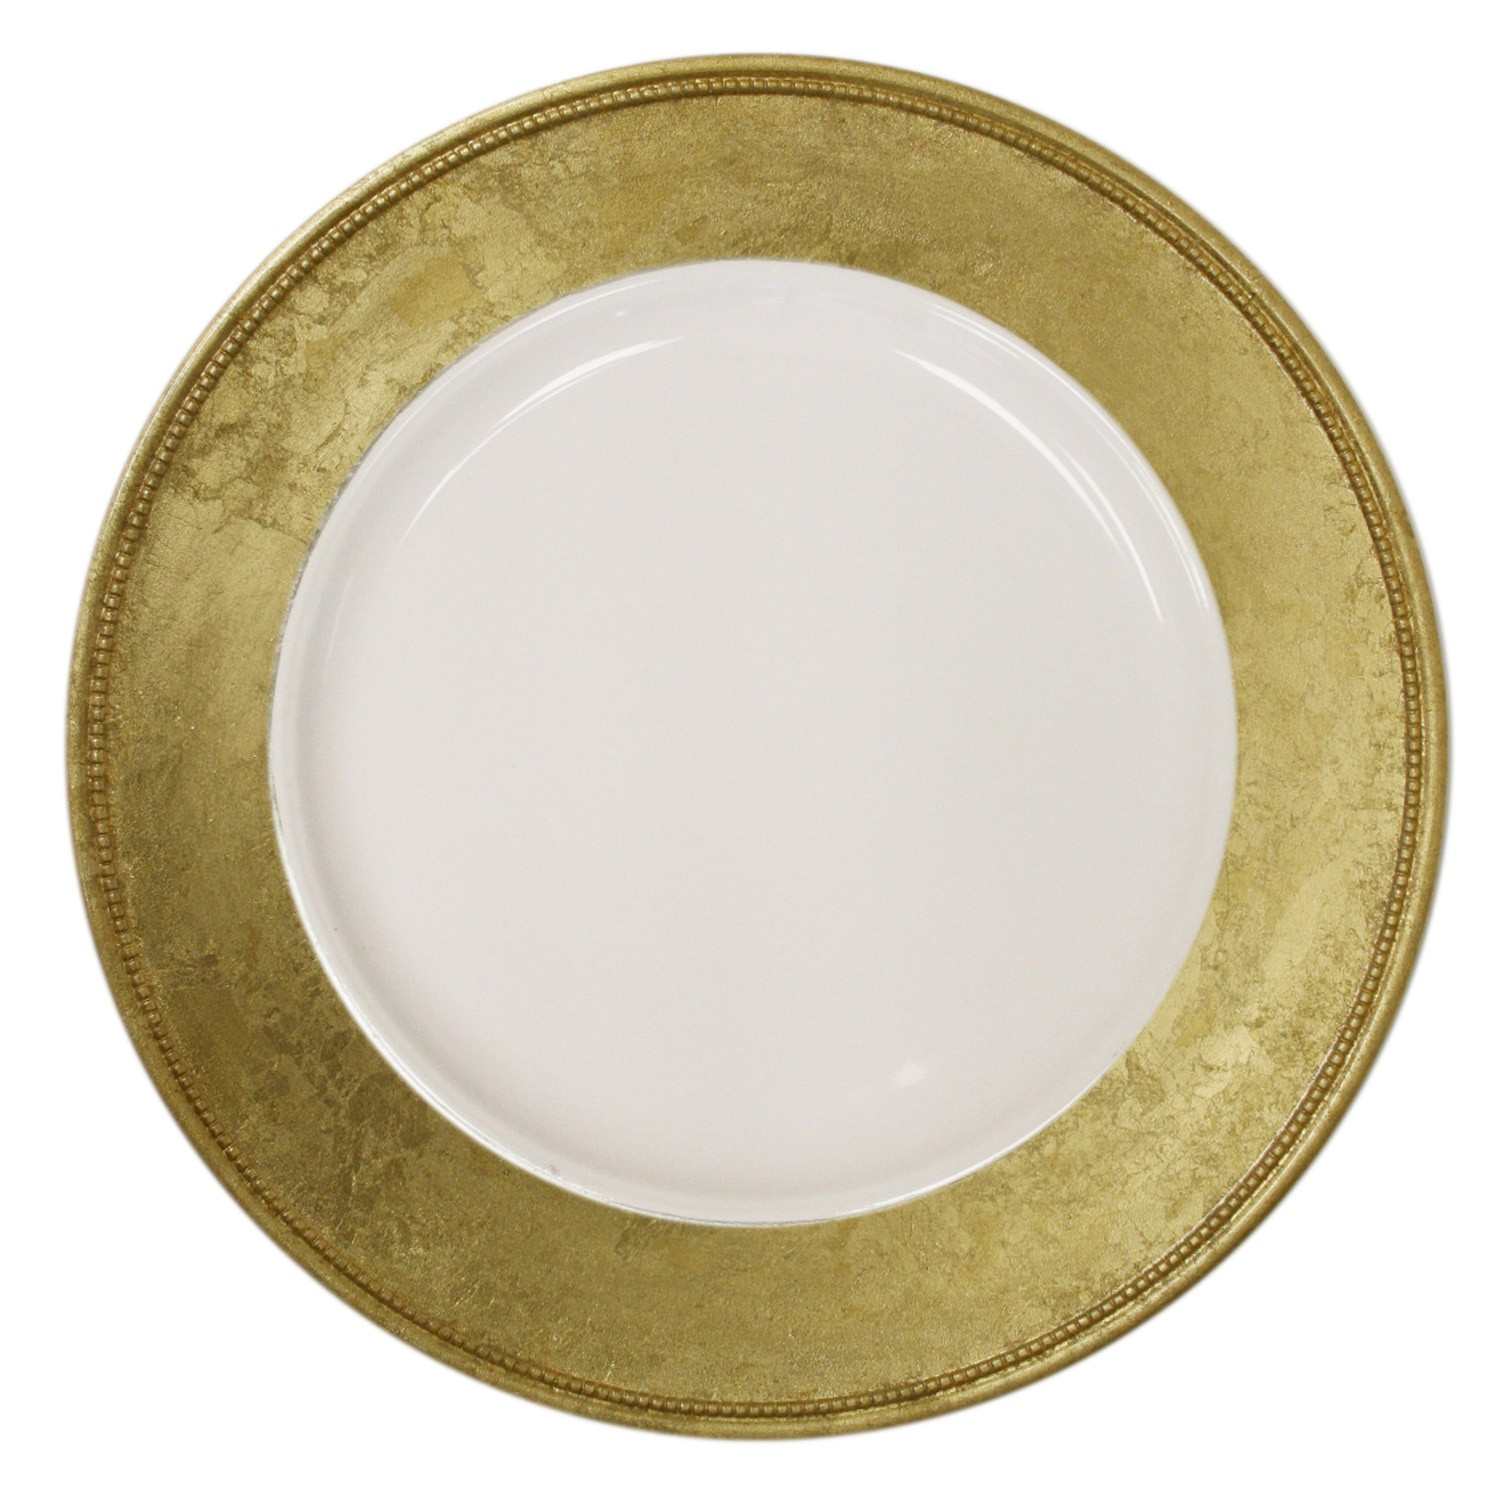 The Jay Companies A466GRK-W Round Gold Leaf Rim Charger Plate 13""